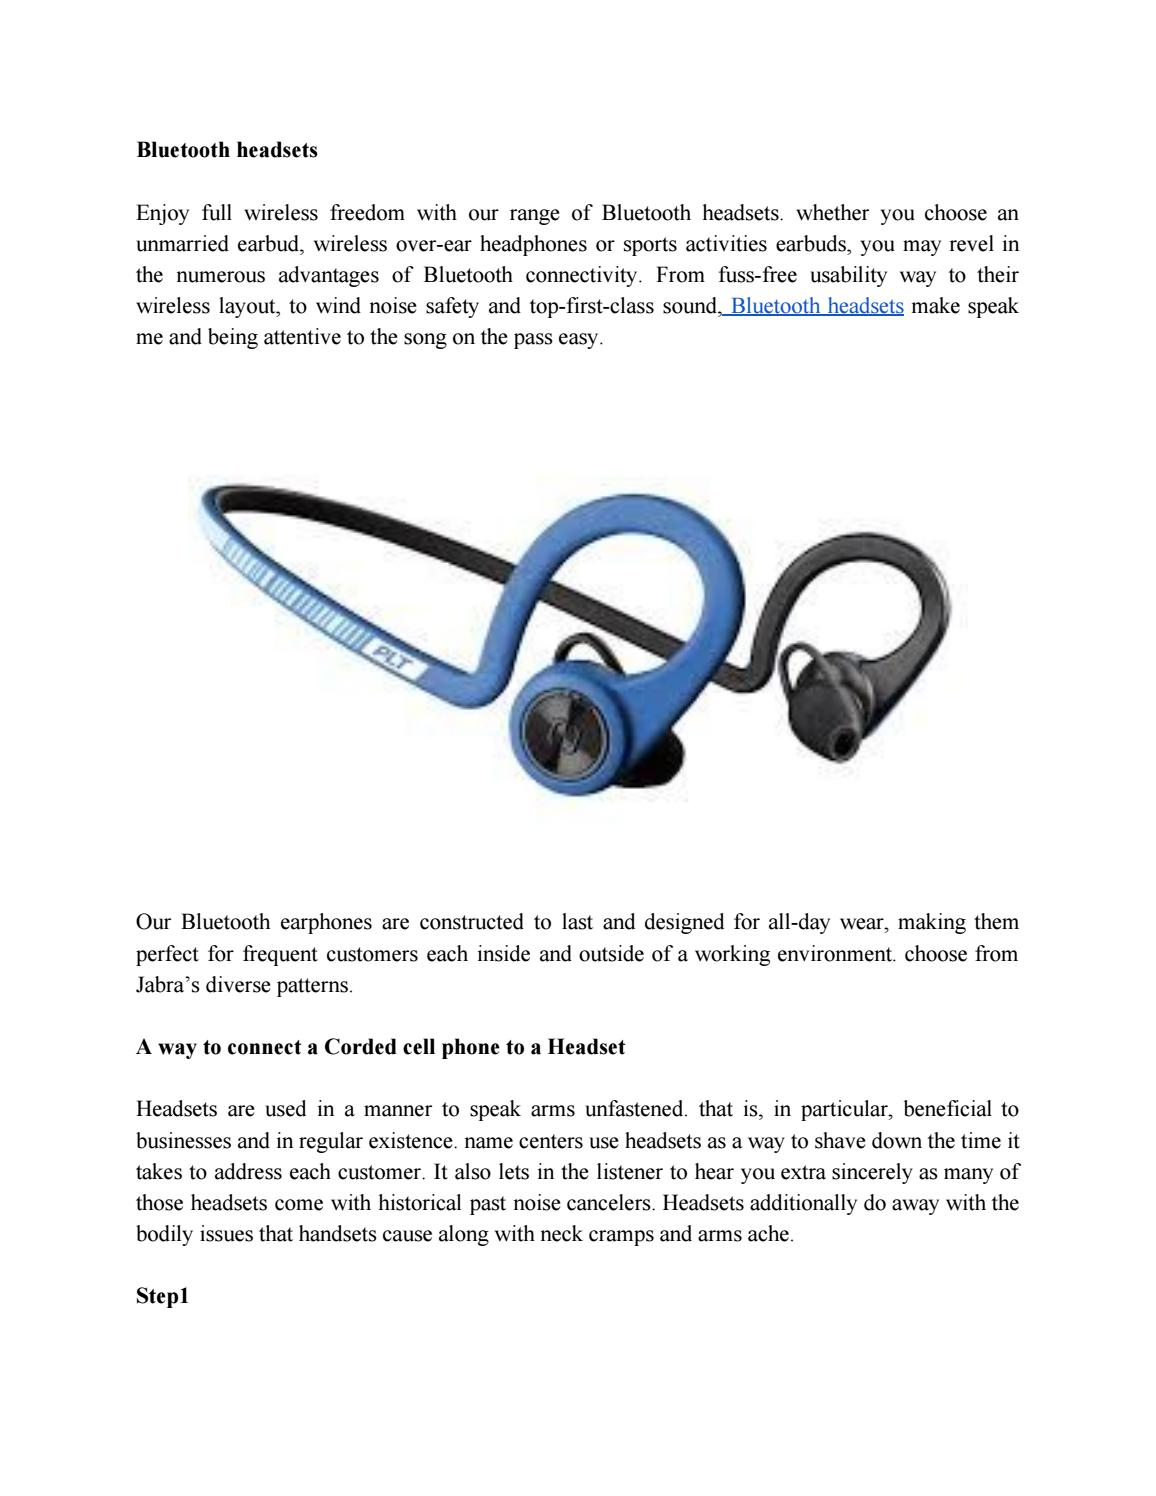 How To Connect Headset To Landline Phone By Stevenrobin071 Issuu